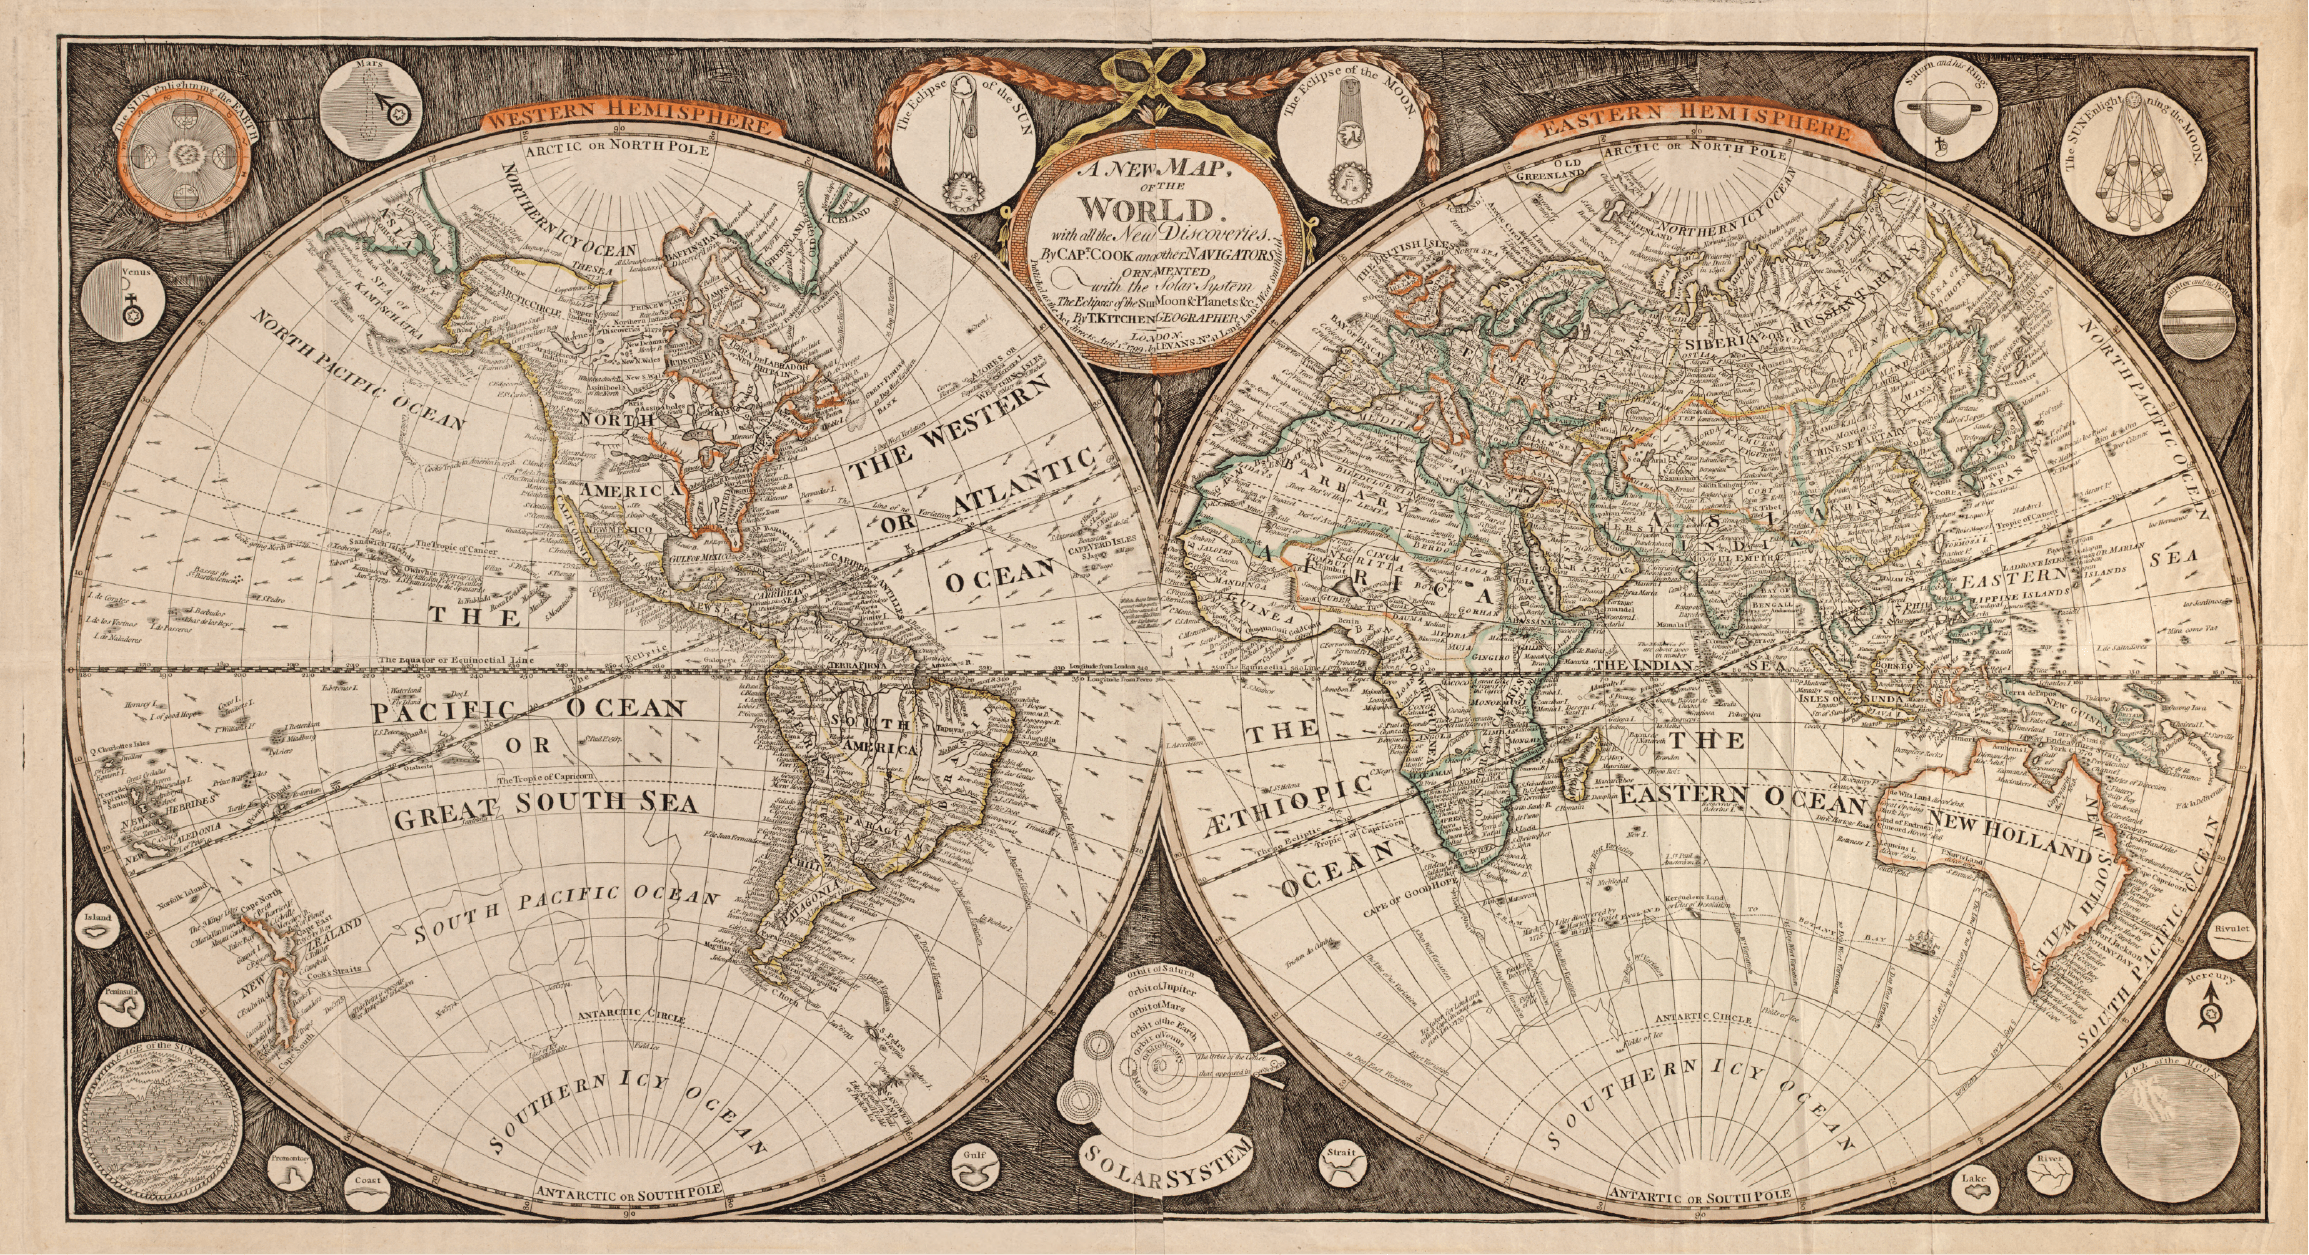 'Old World' Maps